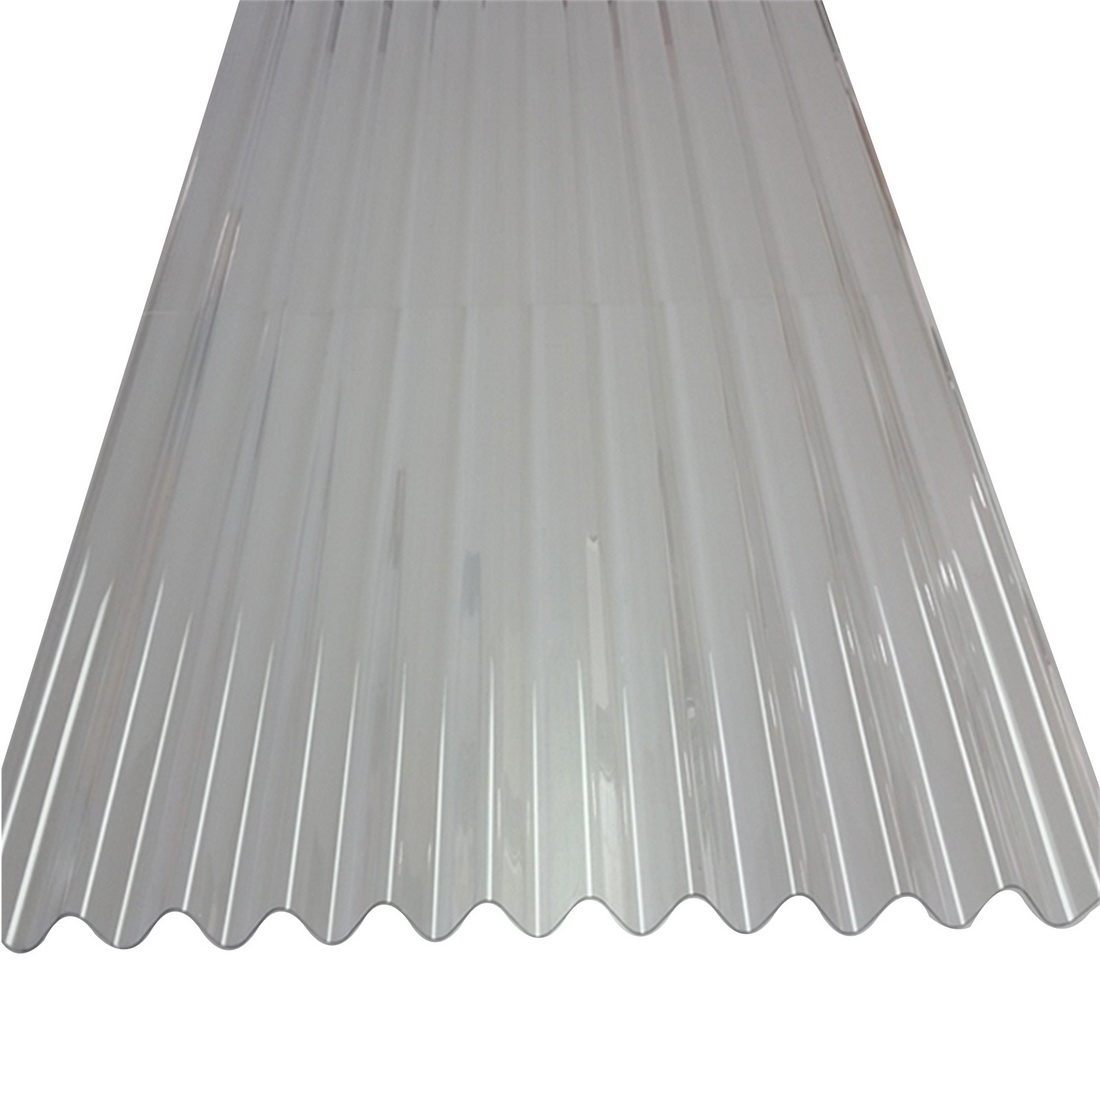 Sunlite Corrugated Roofing 3600 x 660 x 0.8mm PVC Clear SUN-CORR-CLR-3600